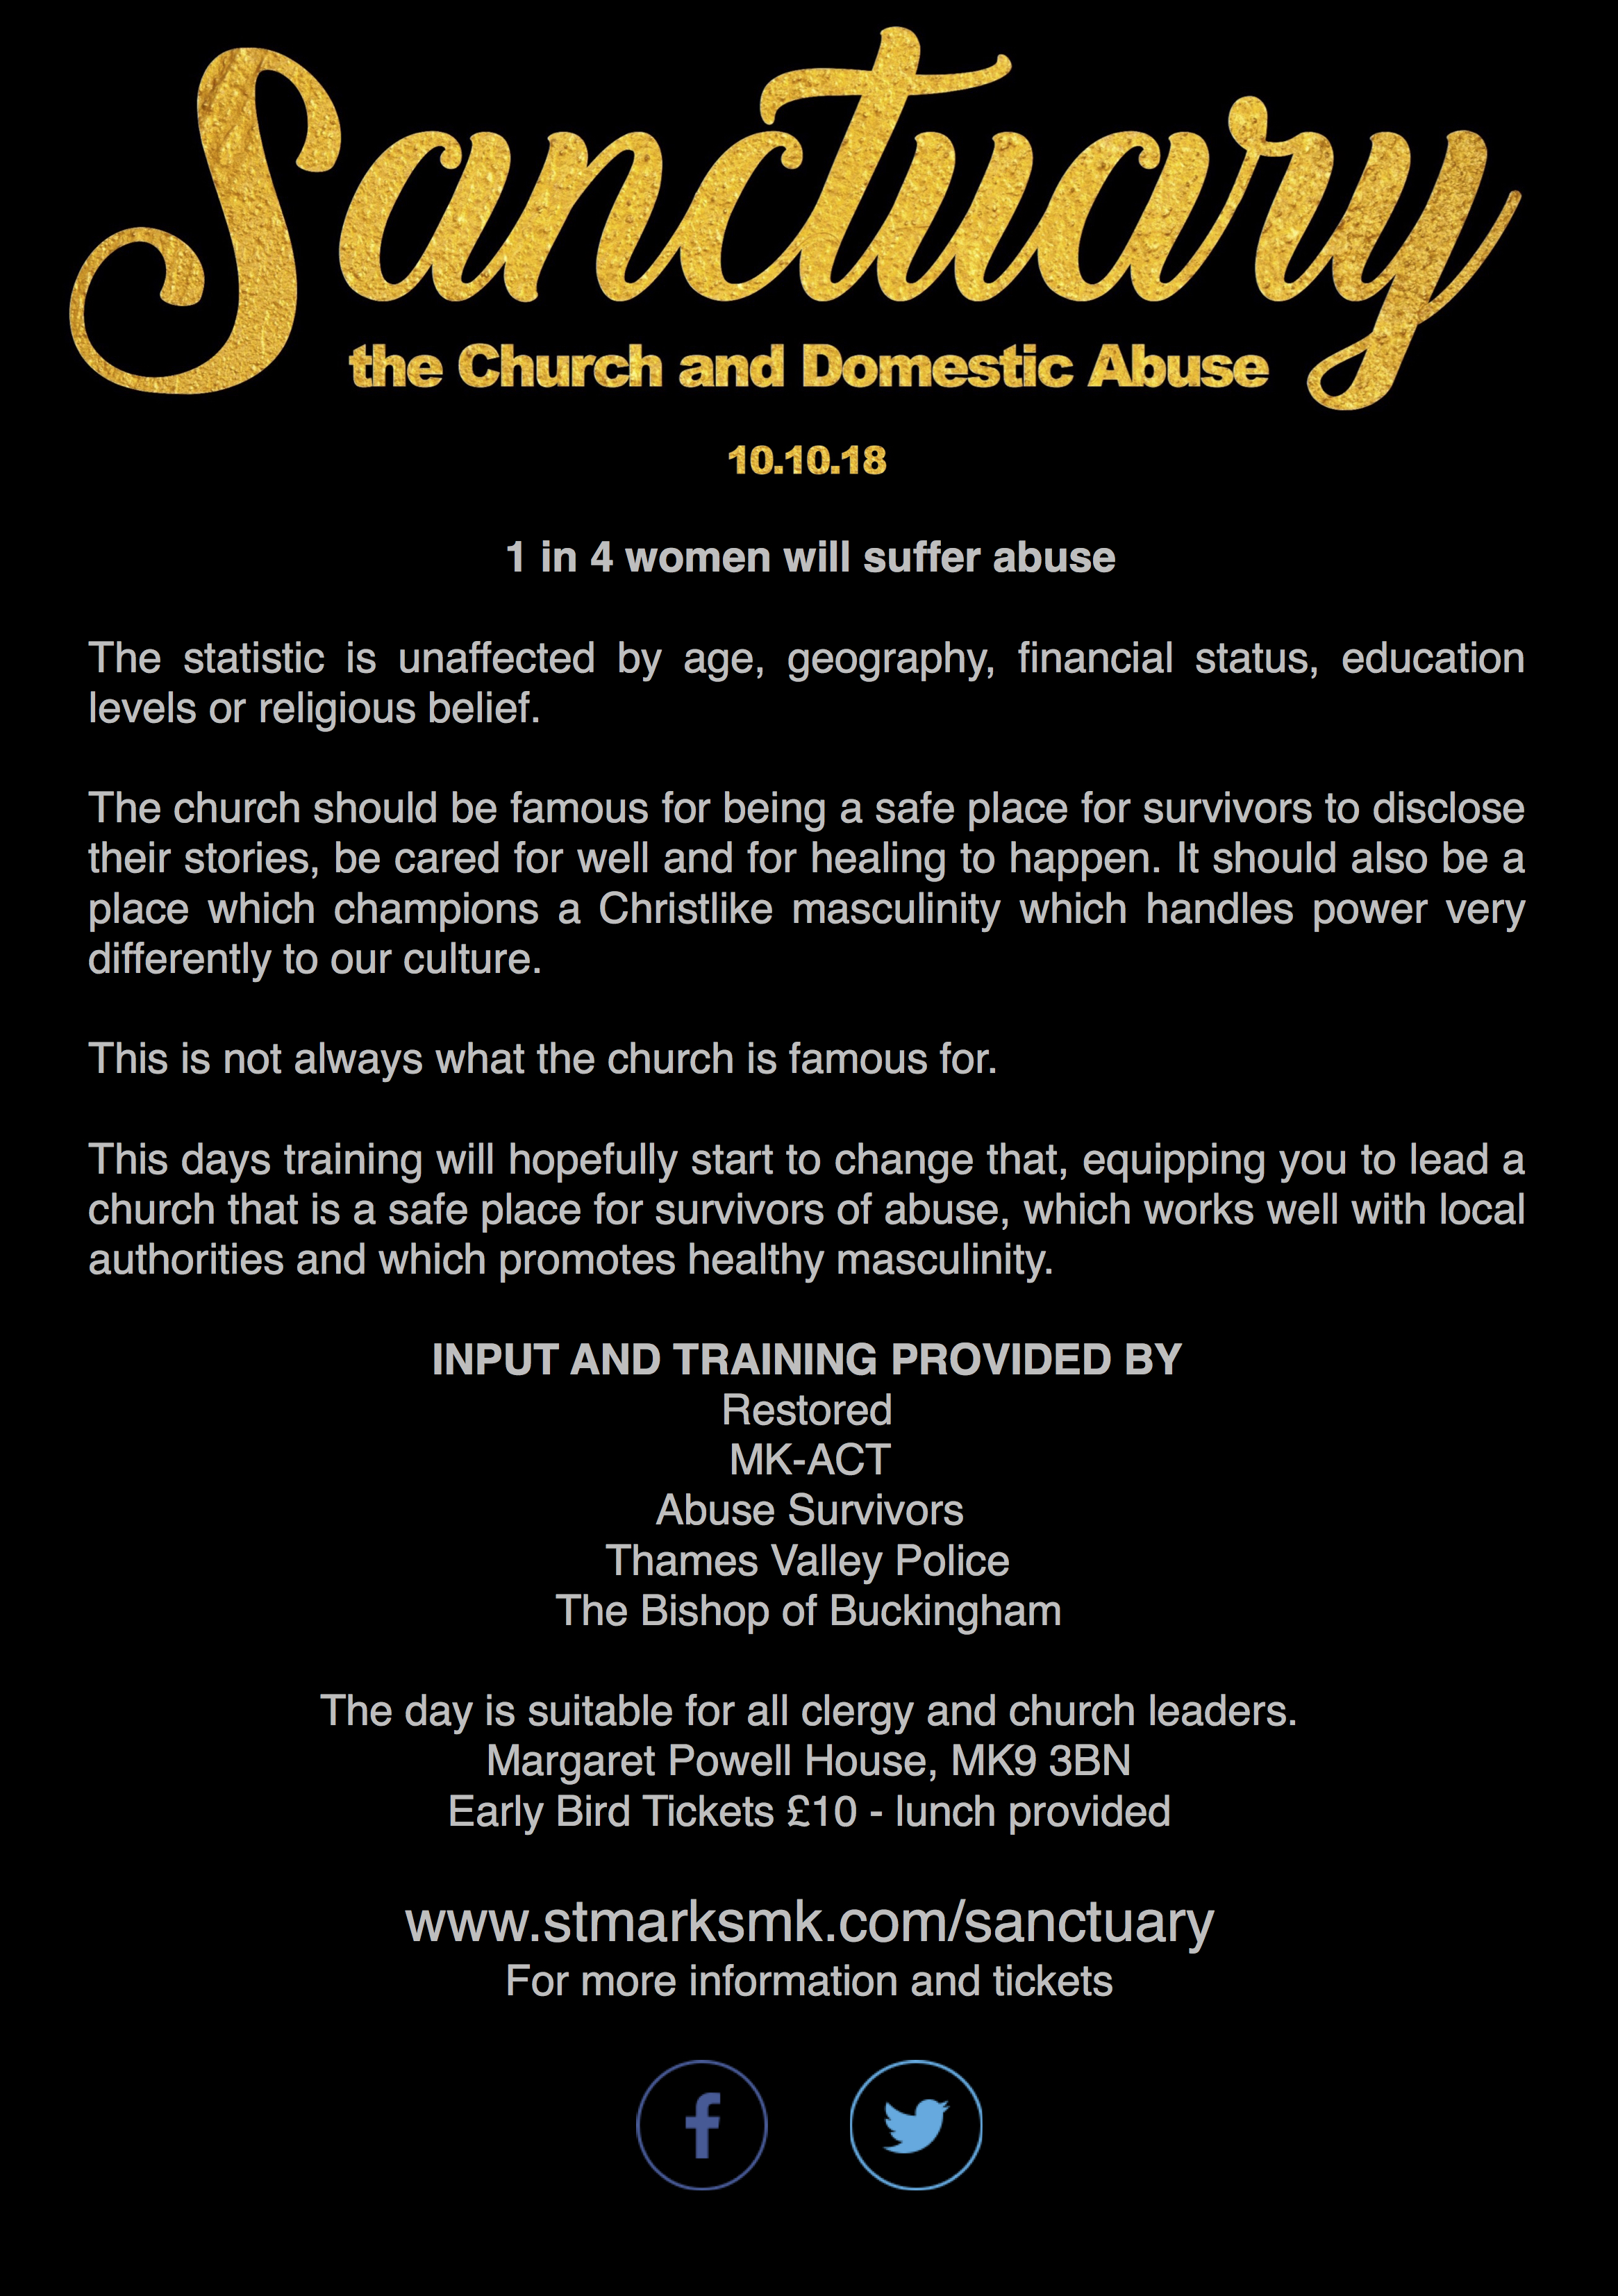 Sanctuary - The Church and Domestic Abuse: 10 October 2018